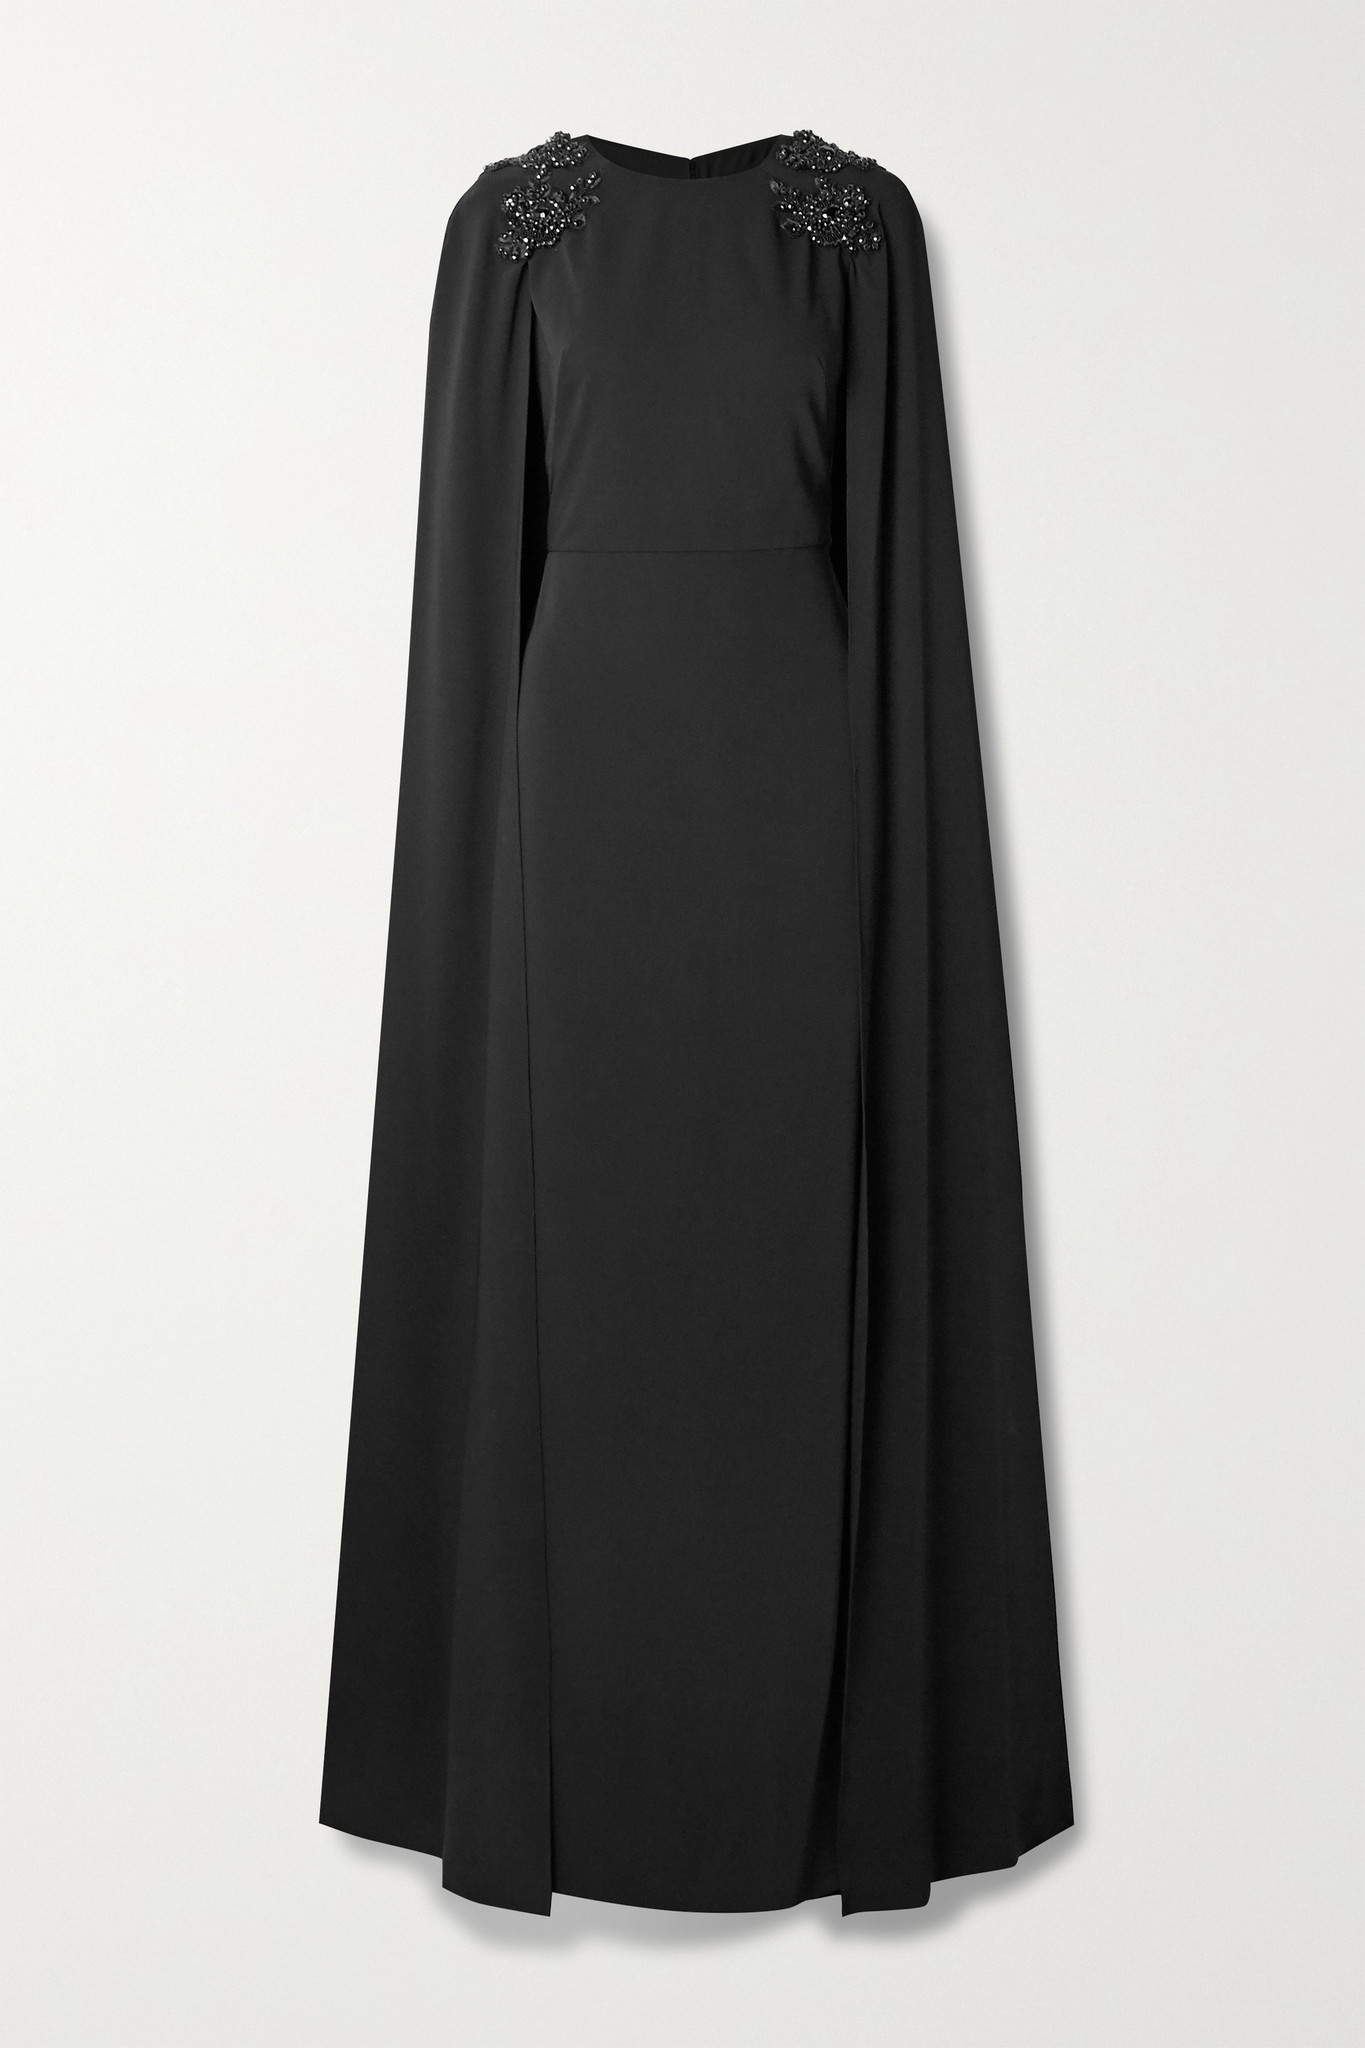 MARCHESA NOTTE - Cape-effect Embellished Crepe Gown - Black - US4